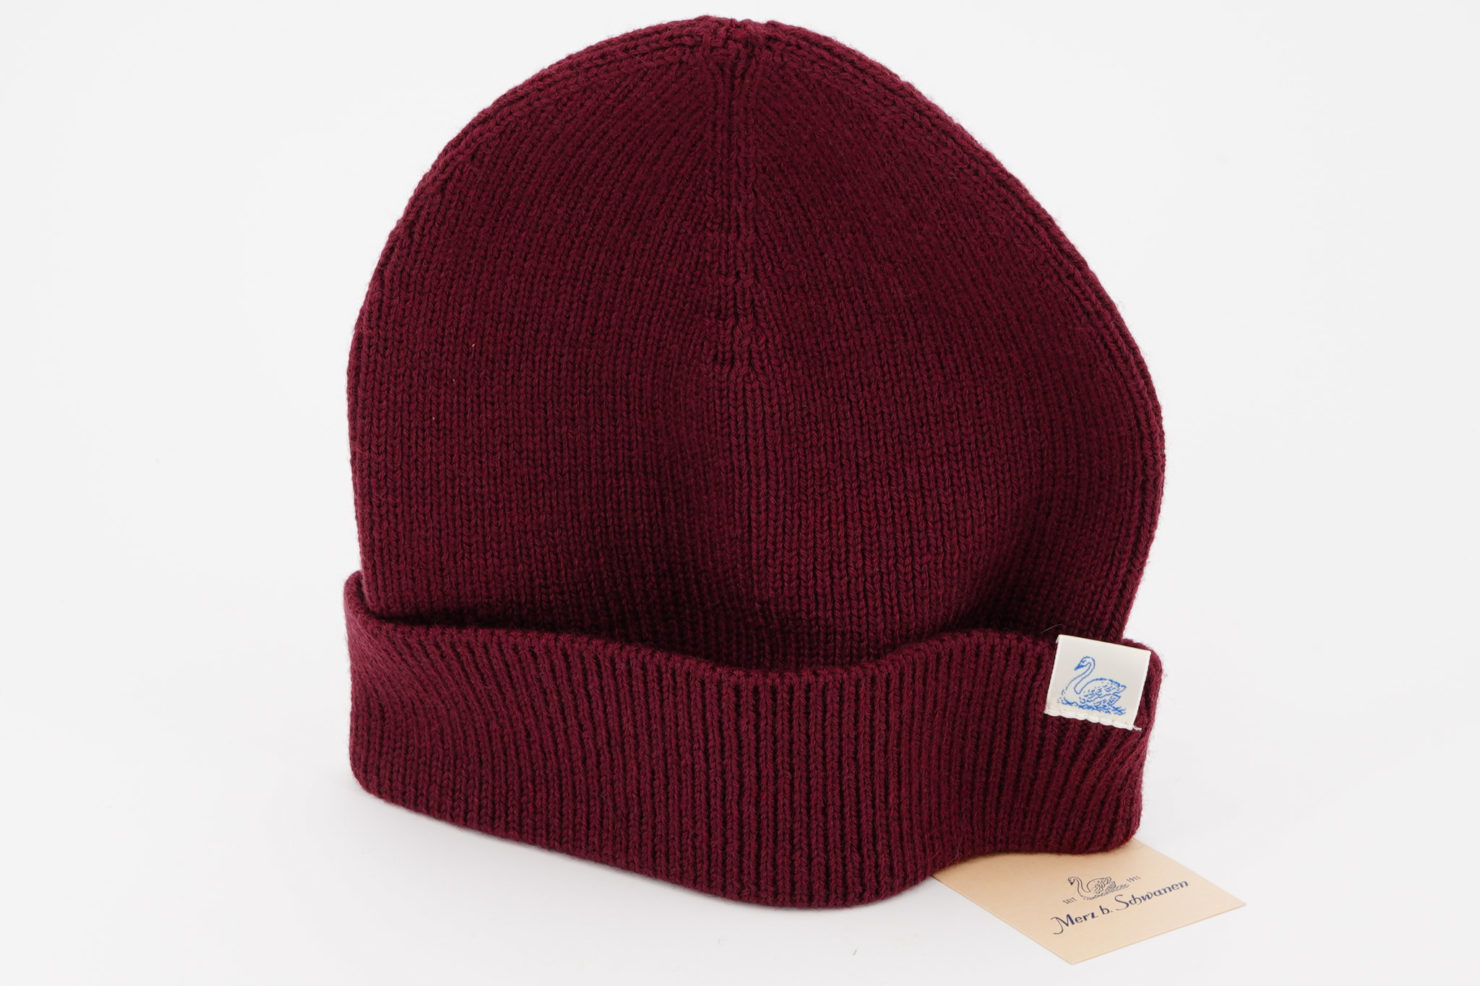 RED OAK WOOL CAP - MERZ B. SCHWANEN